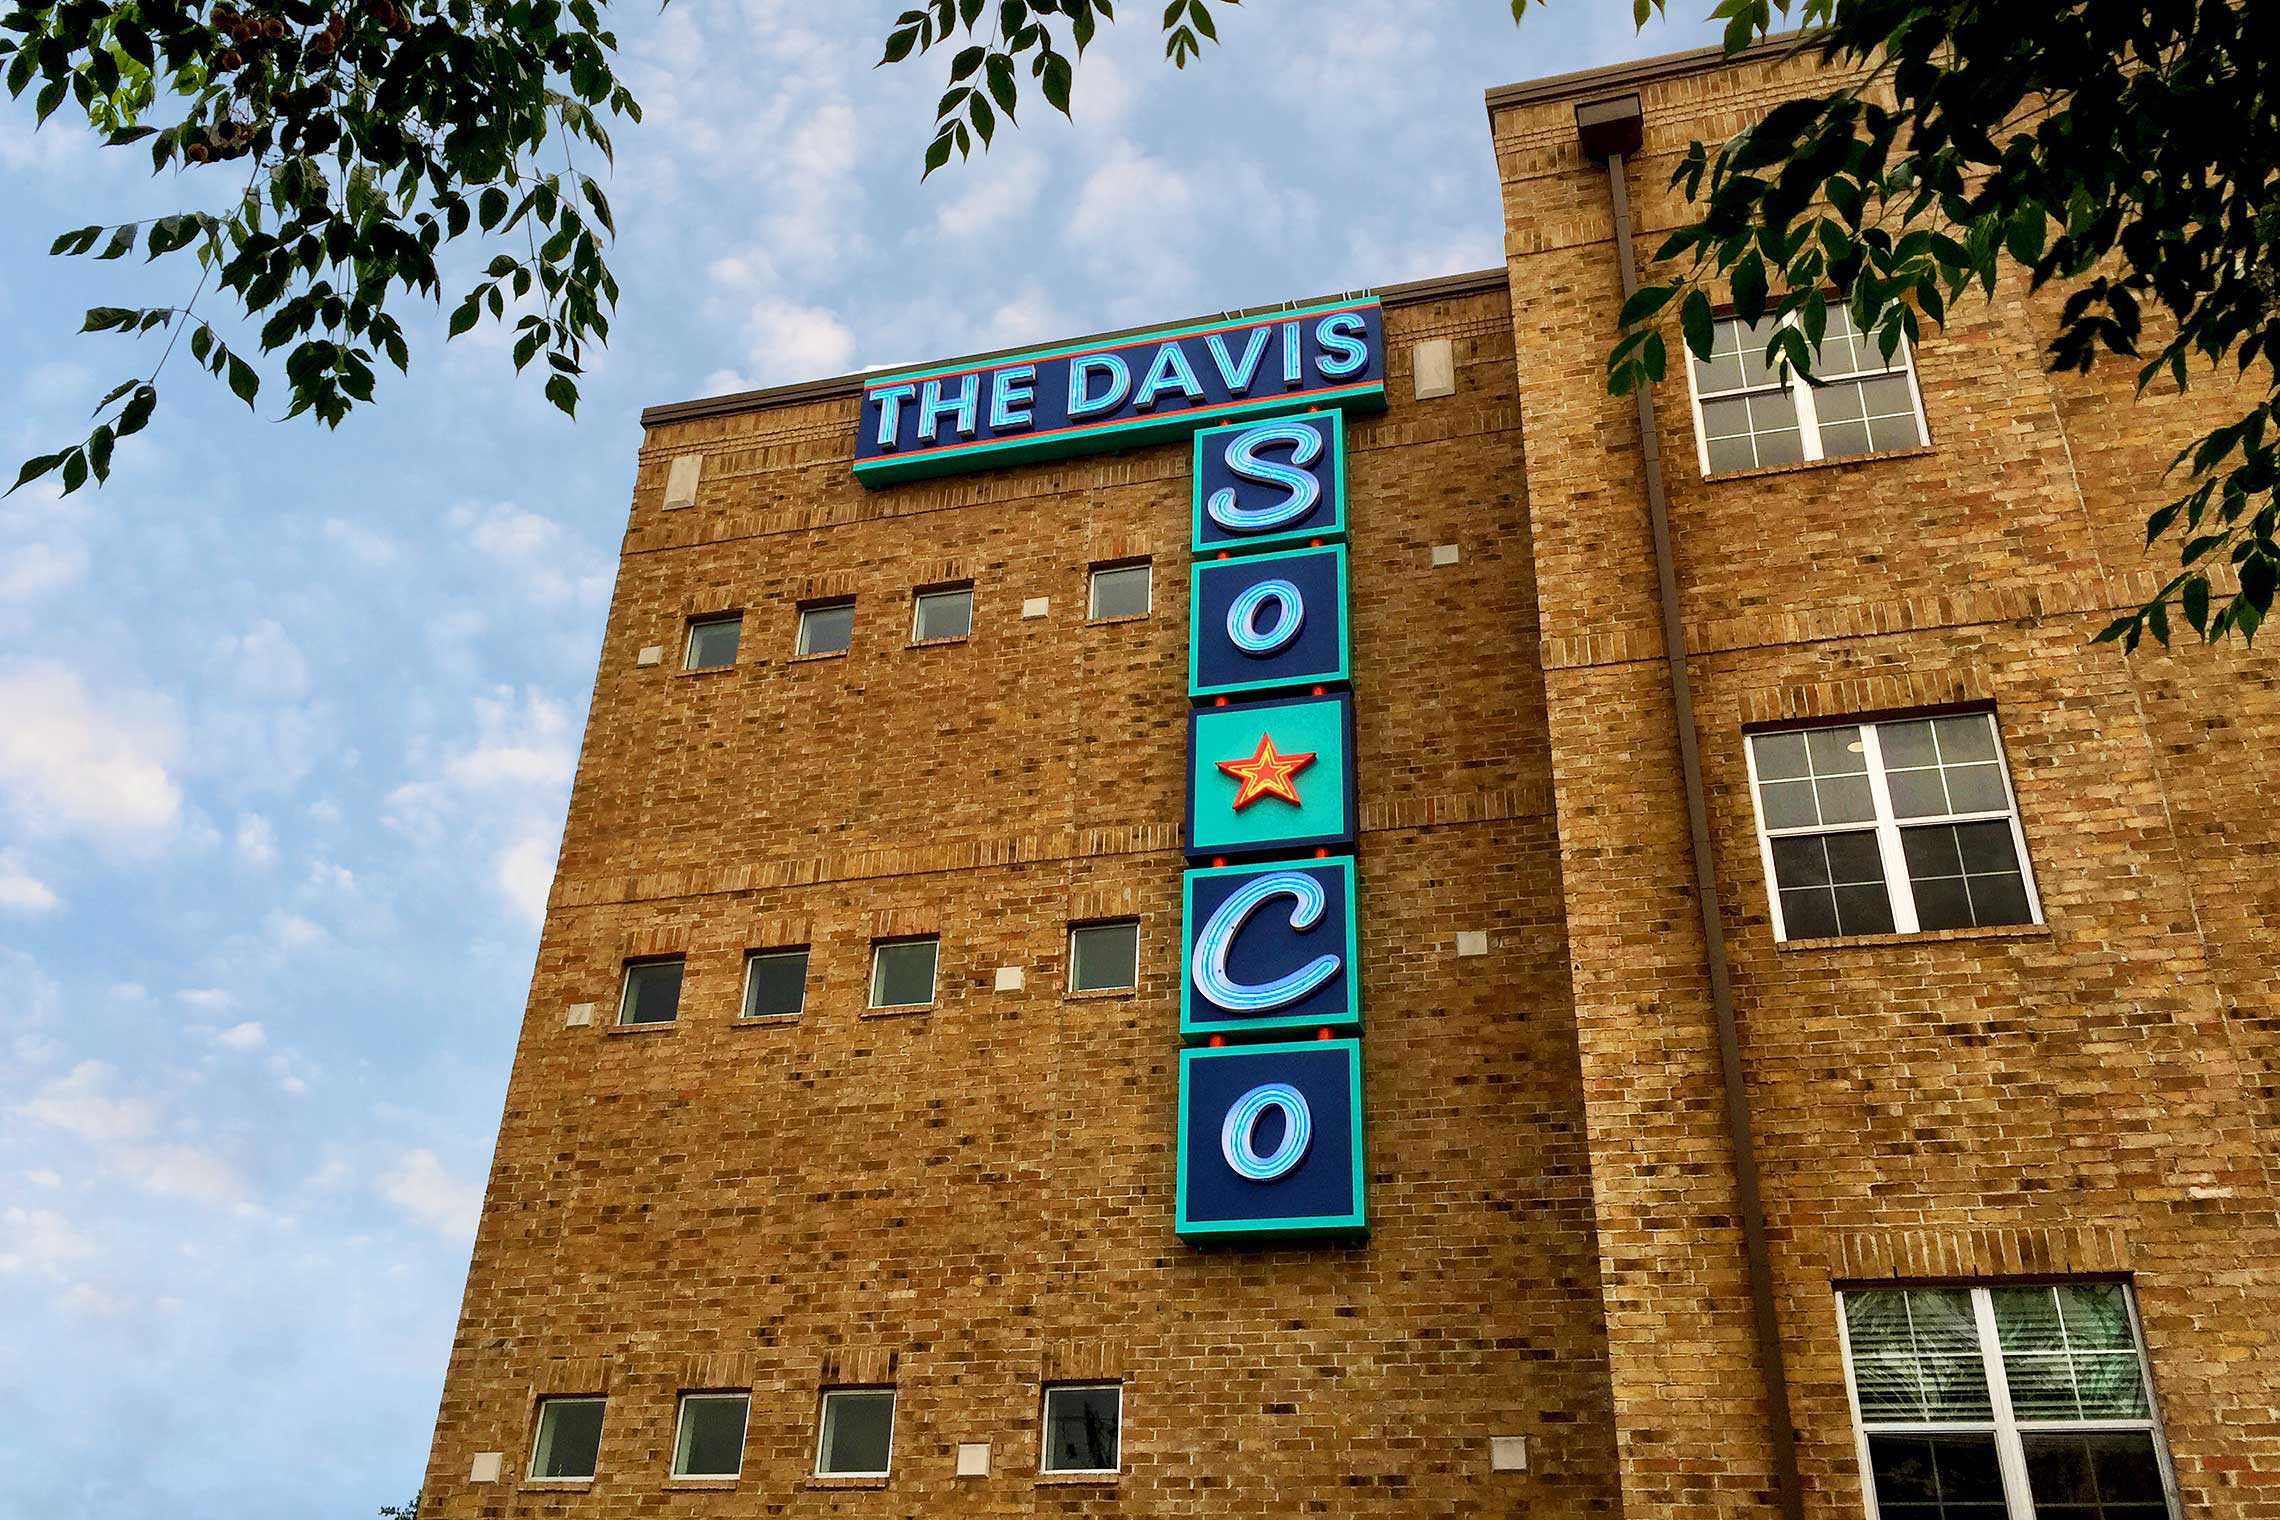 The Davis Soco Urban Industrial Illuminated Neon Wall Identity Sign During the Day